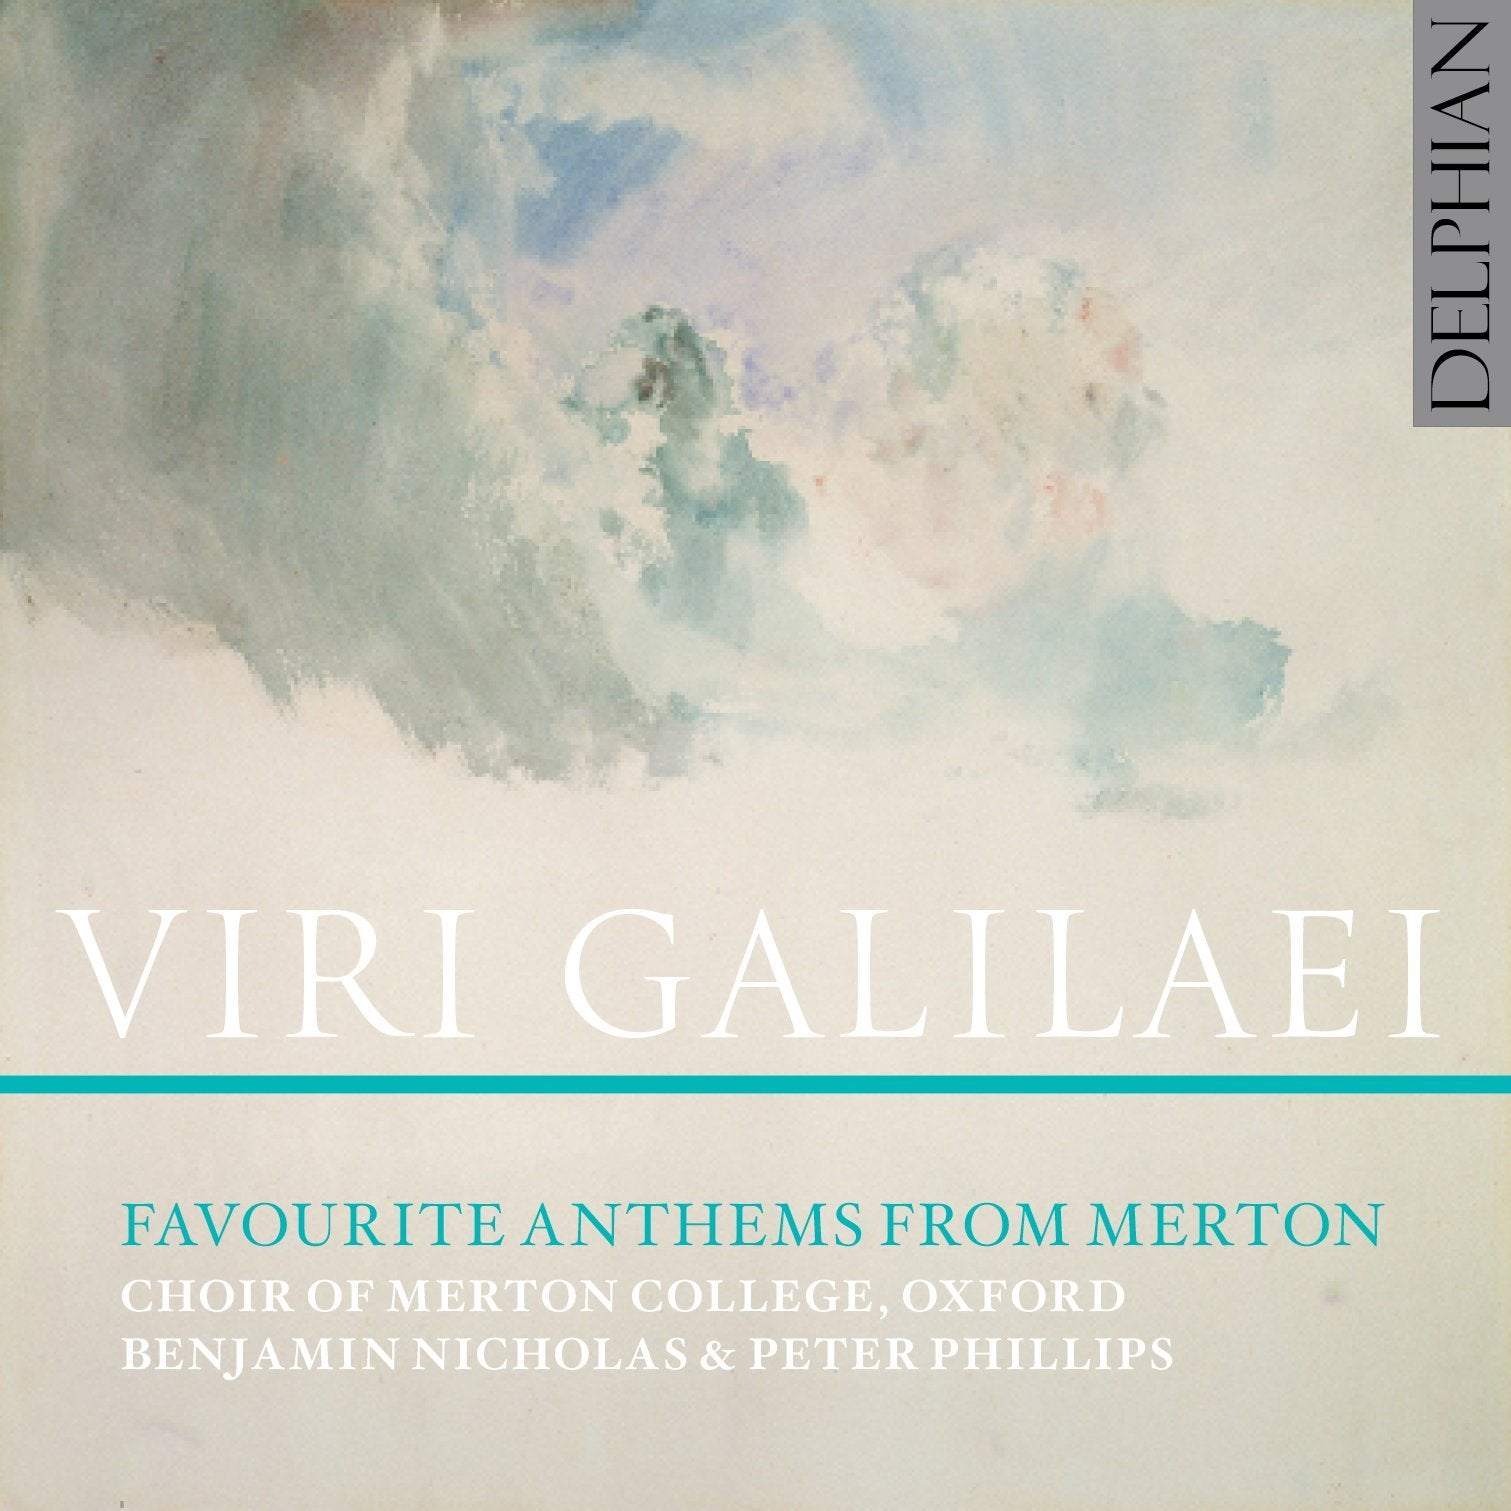 Viri Galilaei: Favourite Anthems from Merton CD Delphian Records